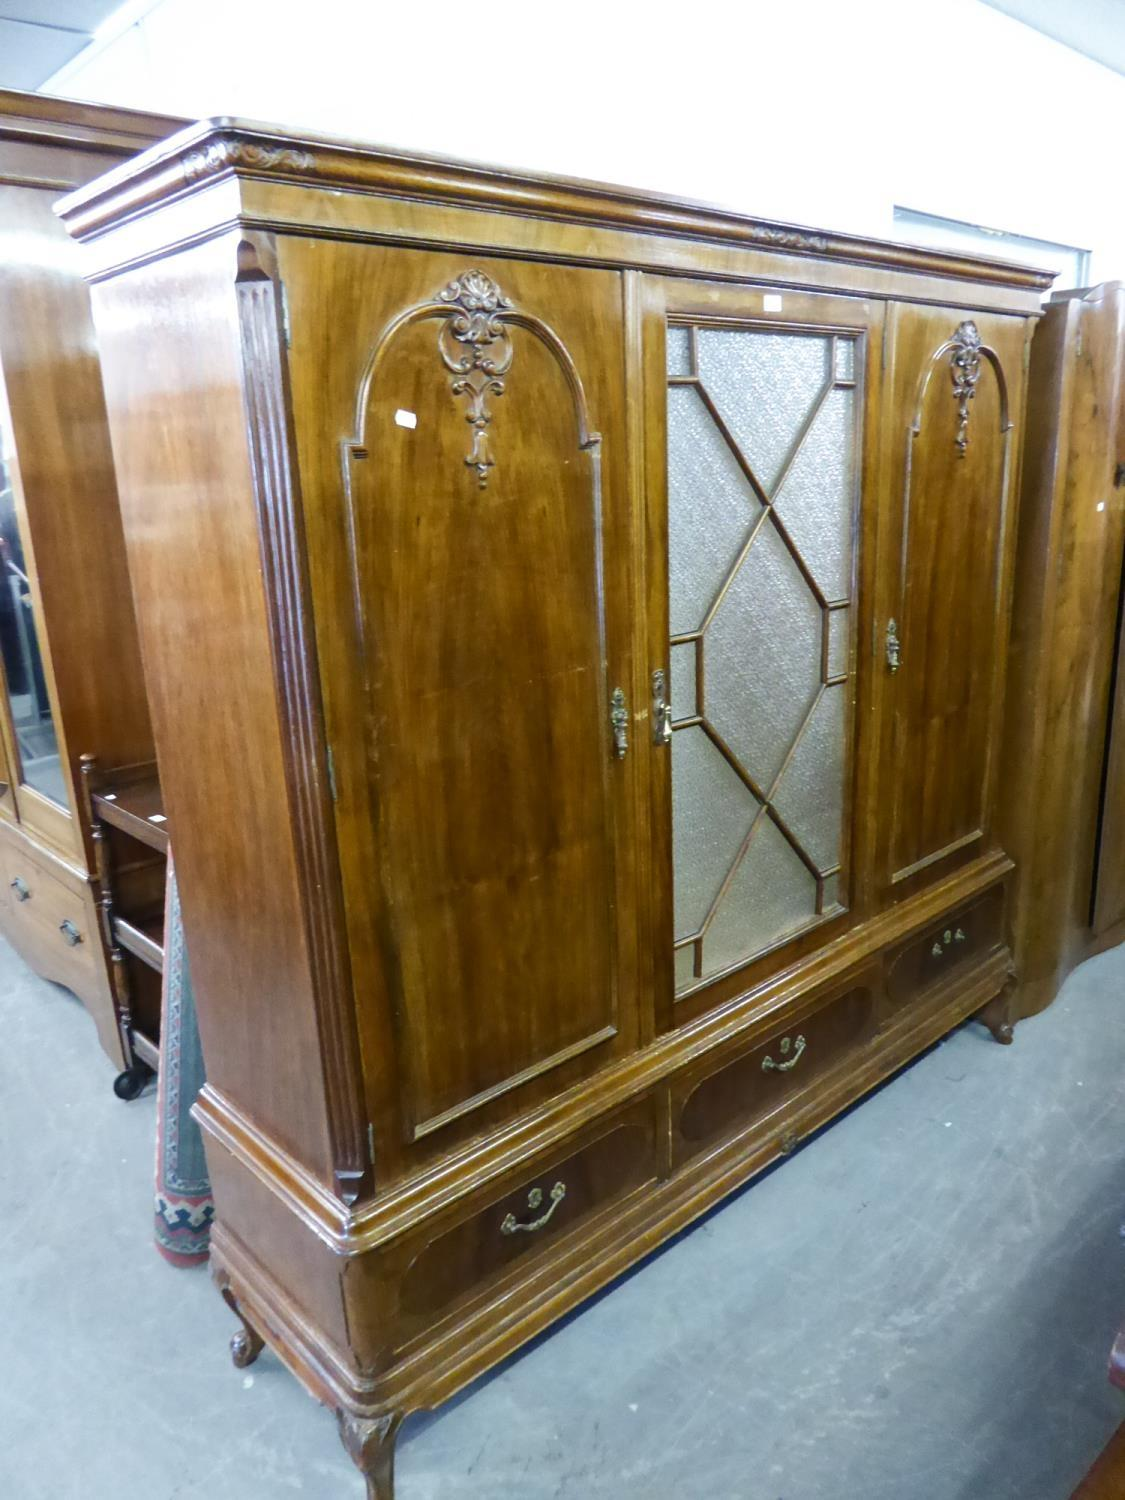 Lot 21 - EARLY 20th CENTURY CONTINENTAL MAHOGANY LARGE SIDE CABINET, WITH OBSCURE GLAZED CENTRE DOOR WITH